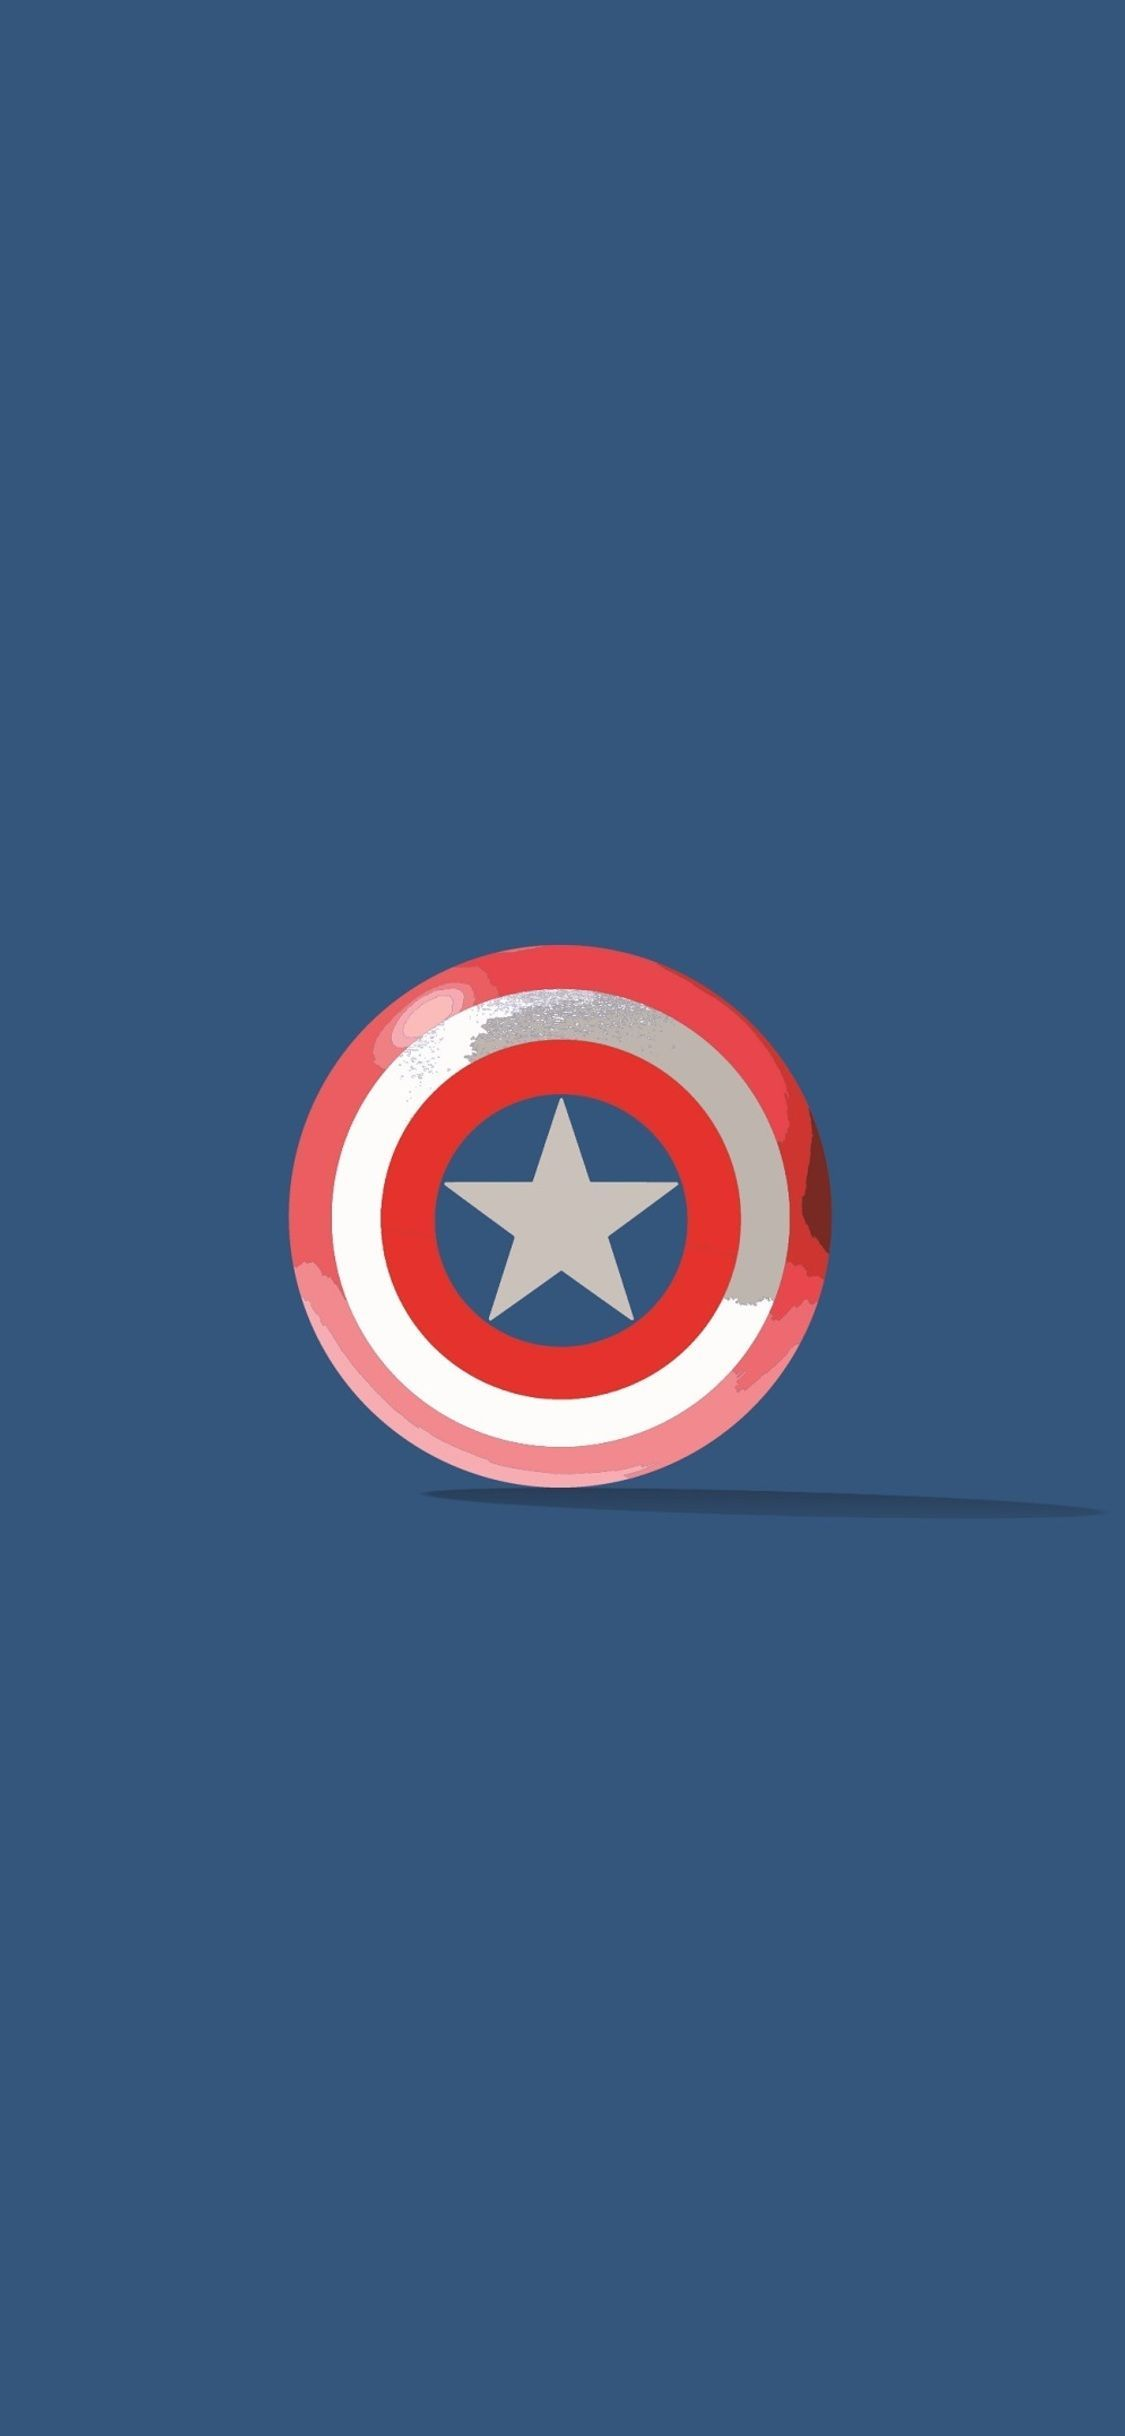 Captain America Wallpaper Iphone Xs Max In 2021 Captain America Wallpaper Iphone Wallpaper Usa Iphone Wallpaper